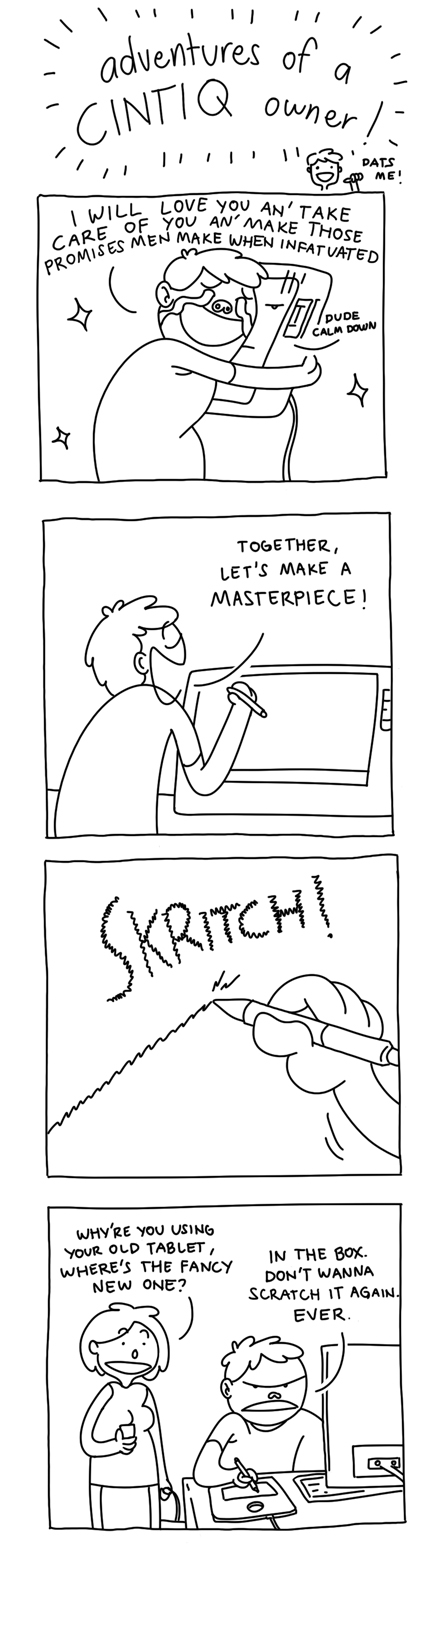 Adventures of a cintiq owner